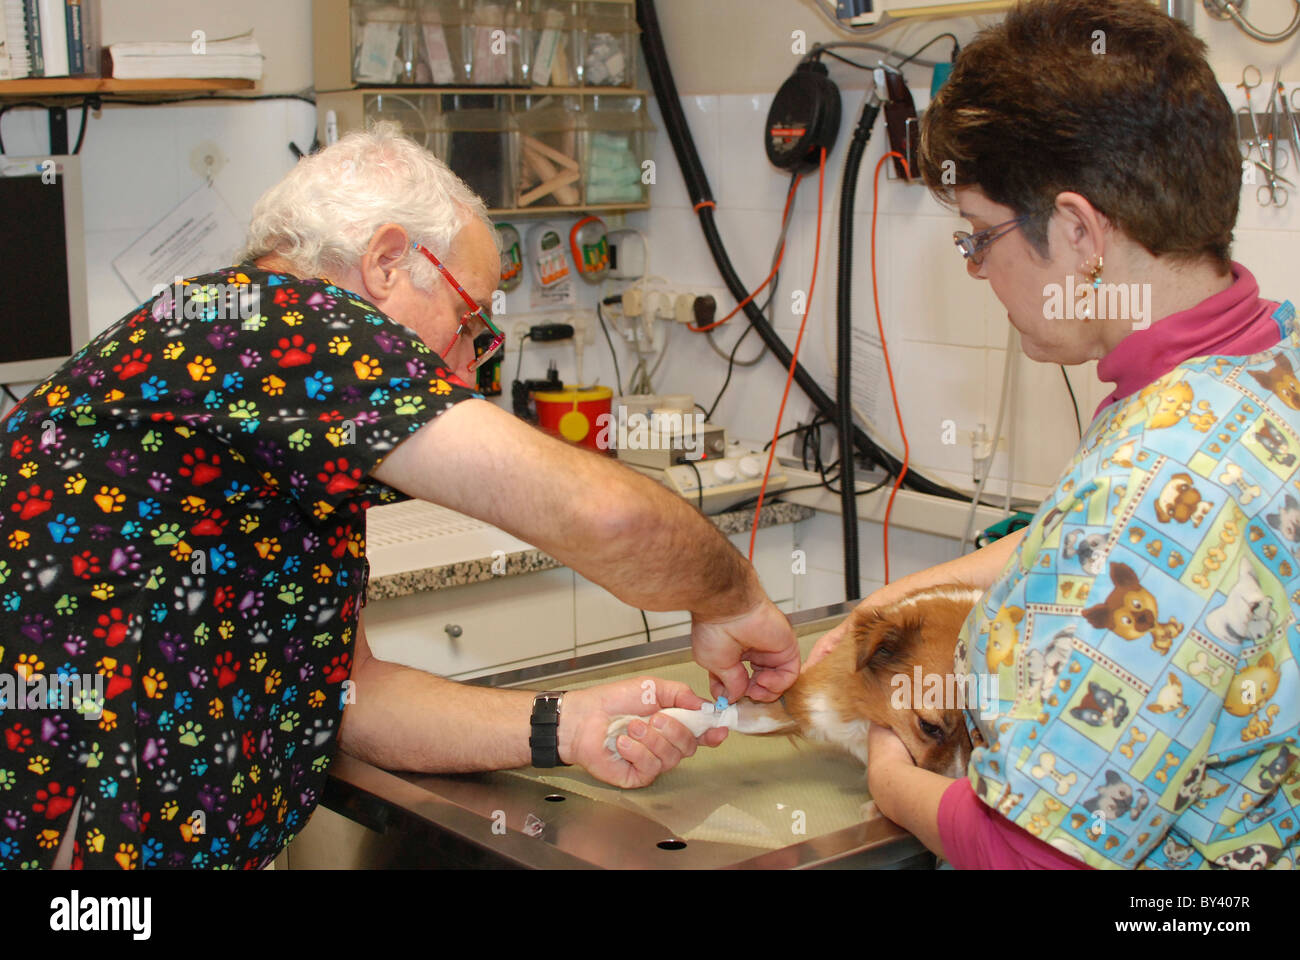 Vet's prepare a dog for surgery inserting an infusion in the dog's leg - Stock Image